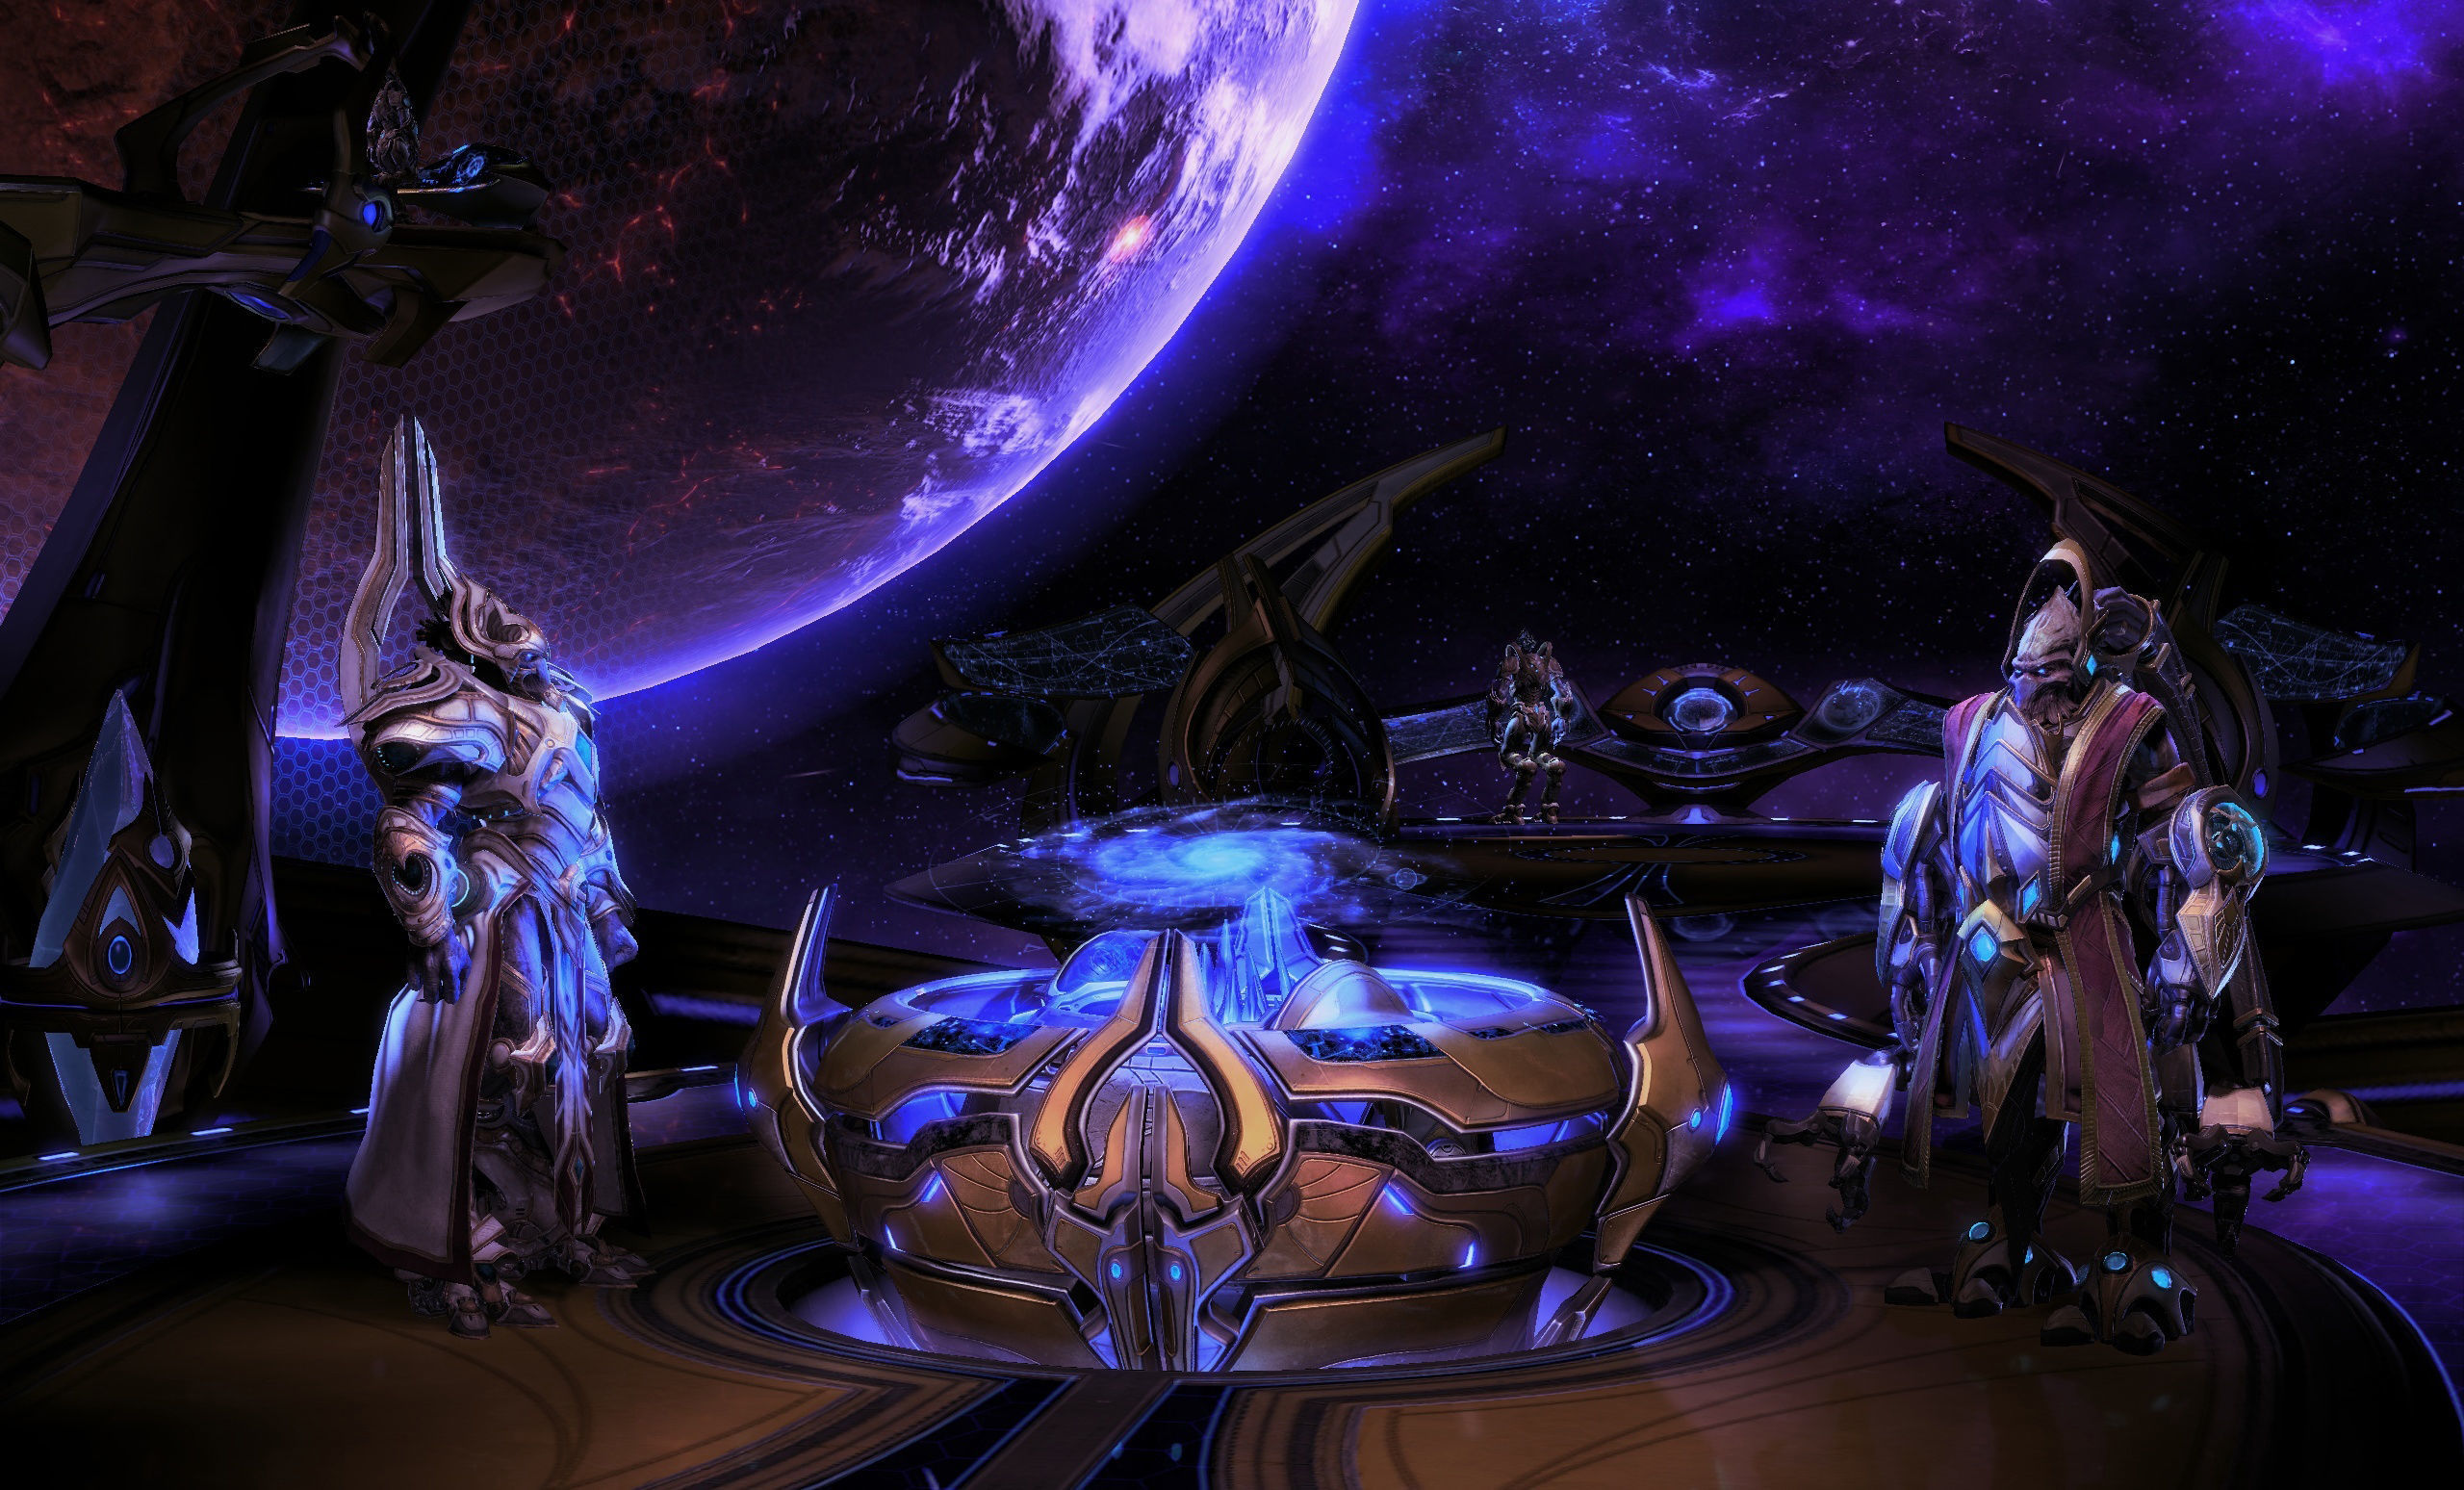 StarCraft II Legacy of the Void HD Wallpaper Background Image 2560x1548